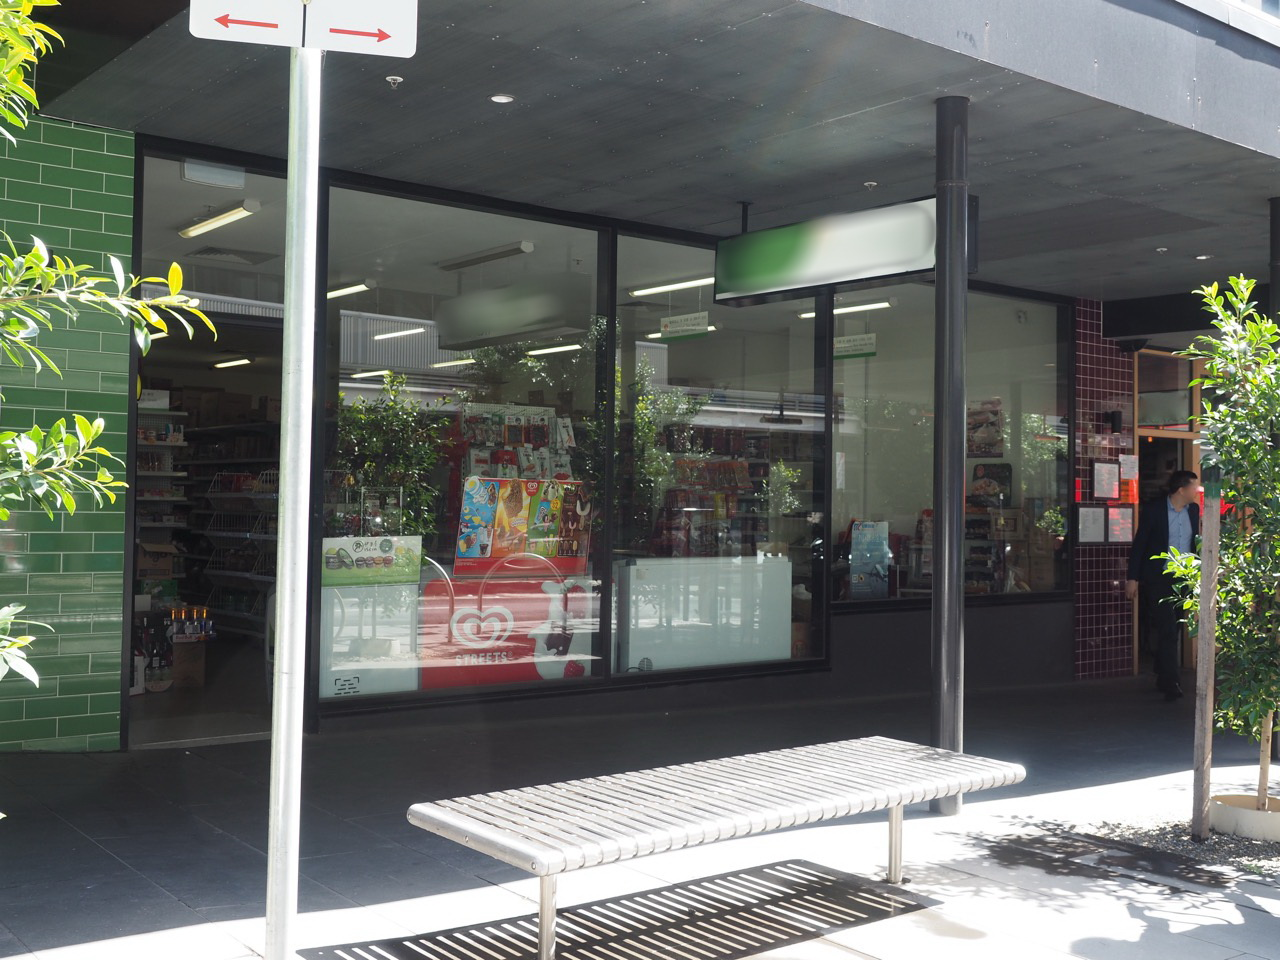 docklands-convenience-store-for-sale-1